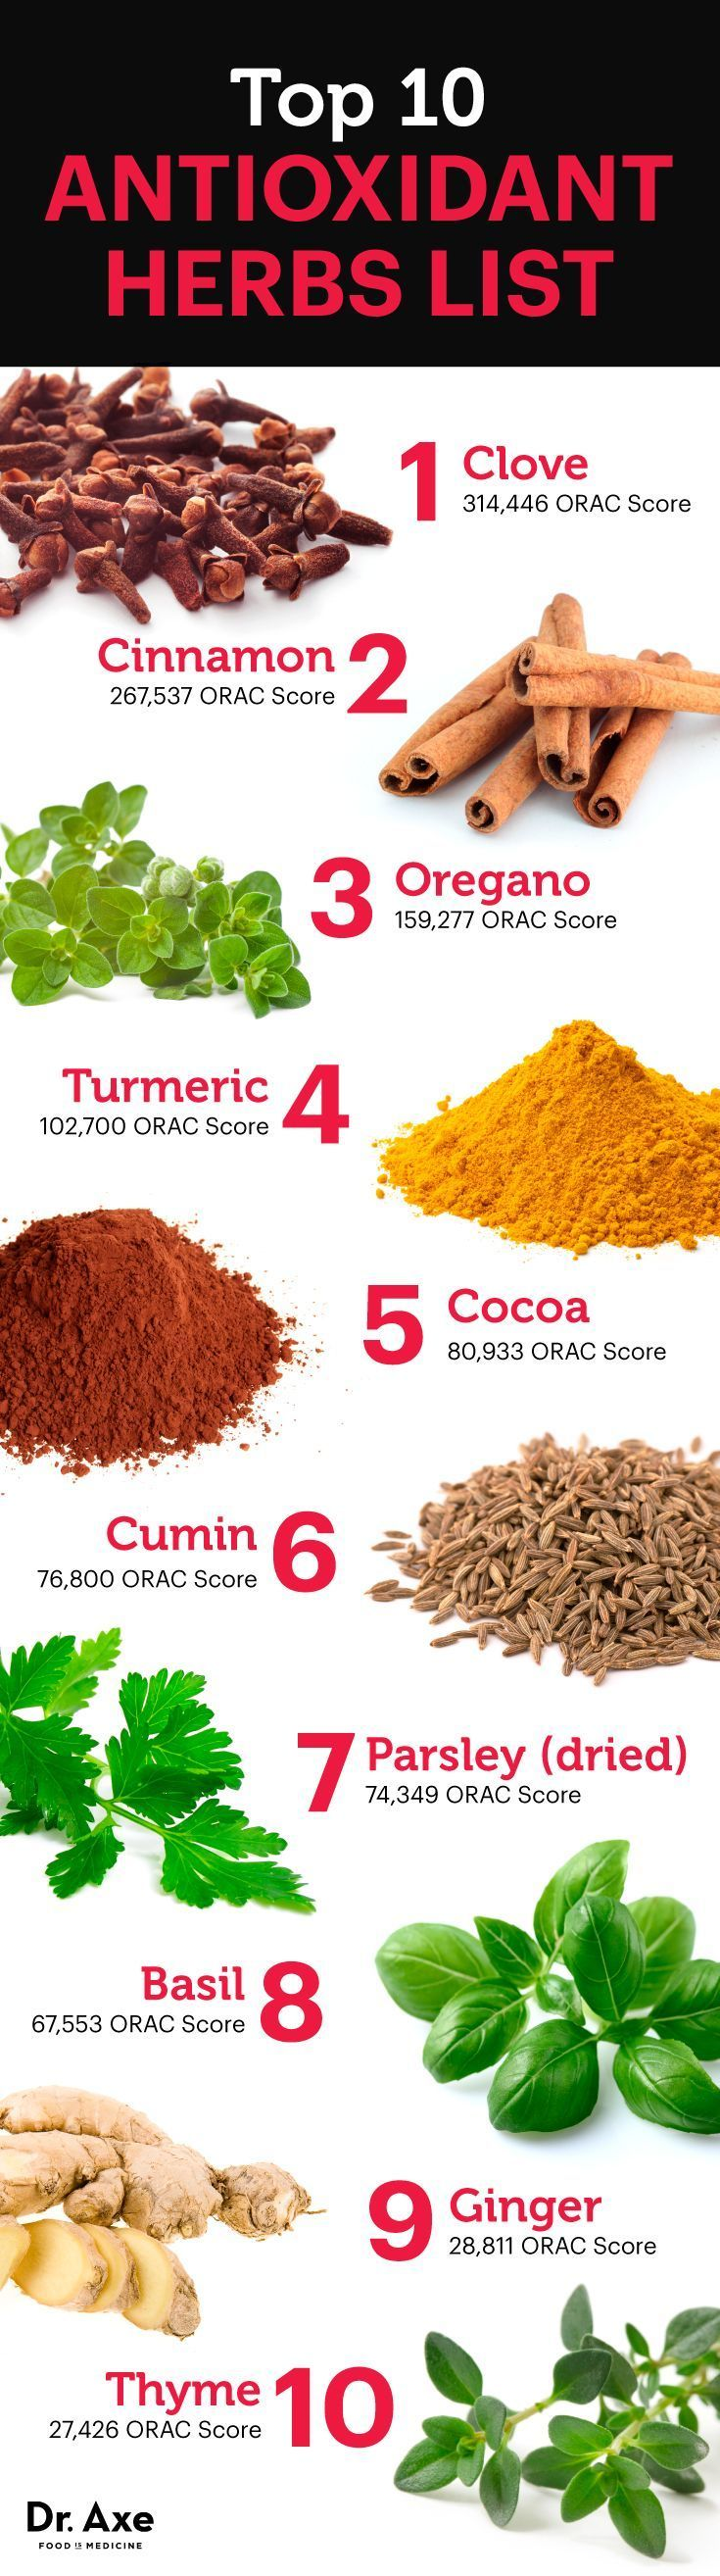 Top 10 High Antioxidant Foods - http://DrAxe.com